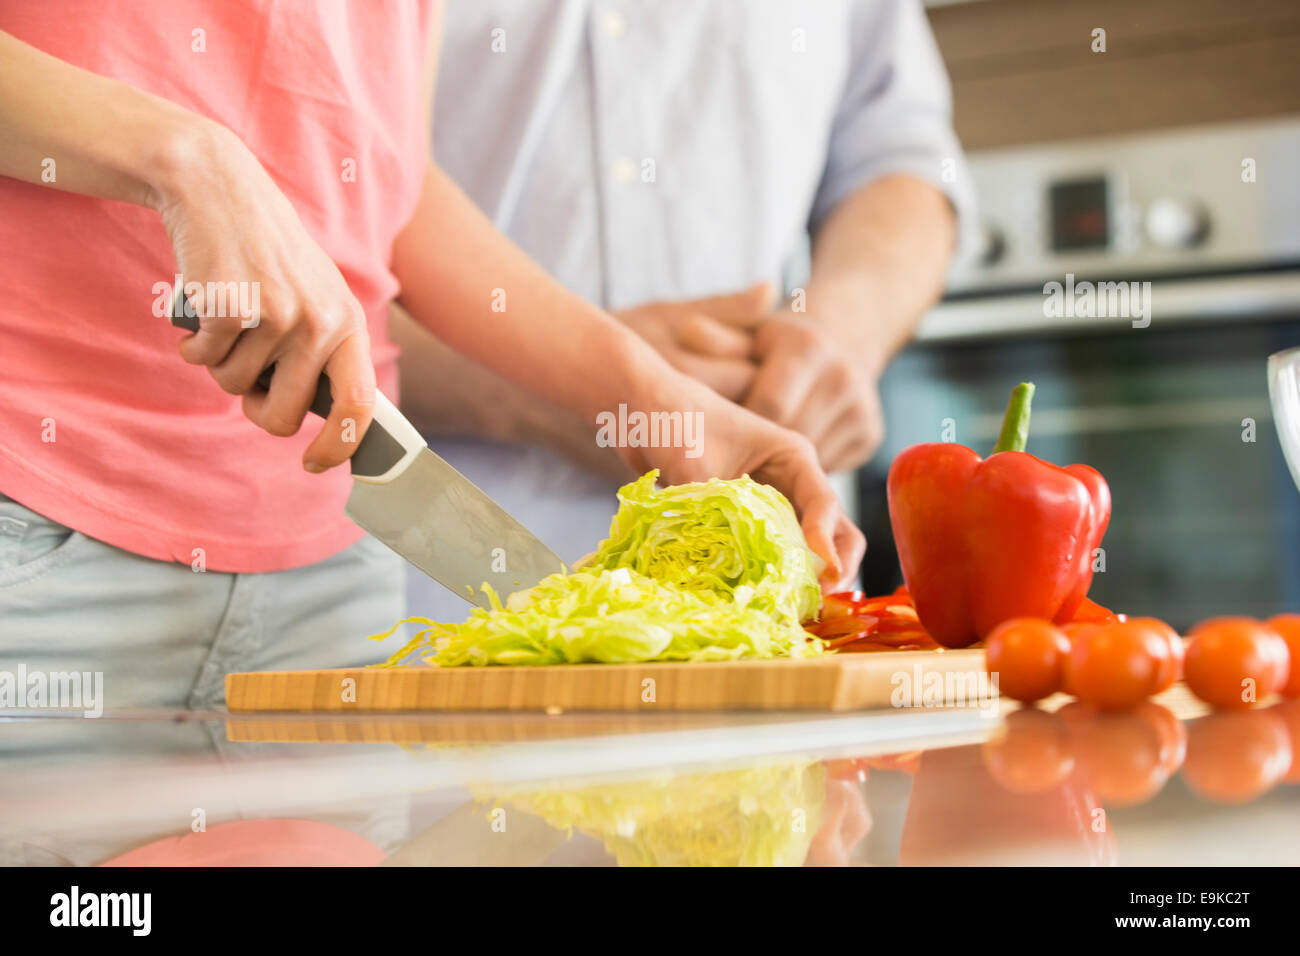 Midsection of woman chopping vegetables in kitchen with man standing in background - Stock Image